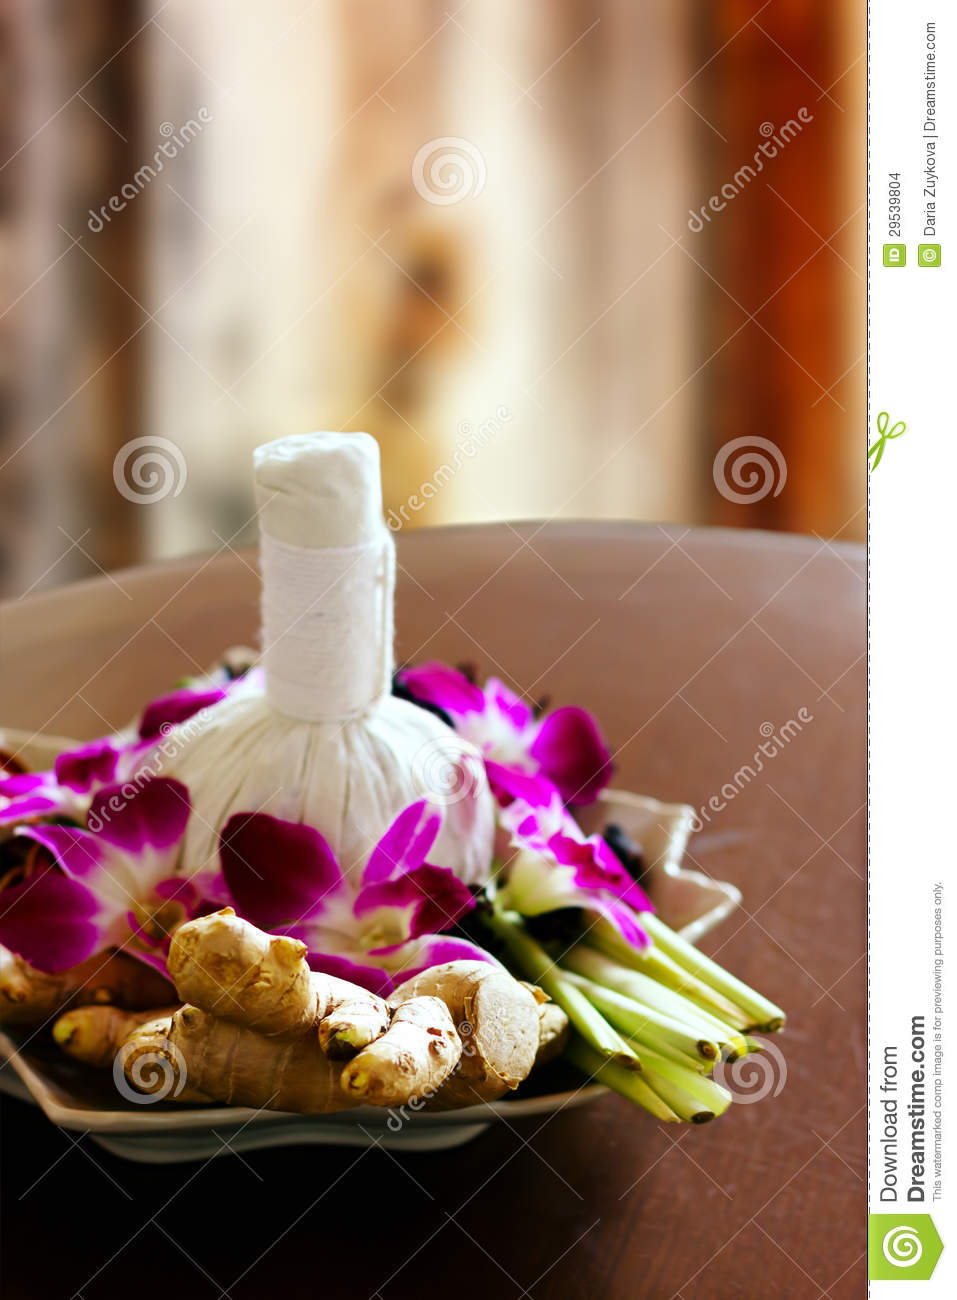 Spa massage decoration stock images image 29539804 - Decoratie spa ...